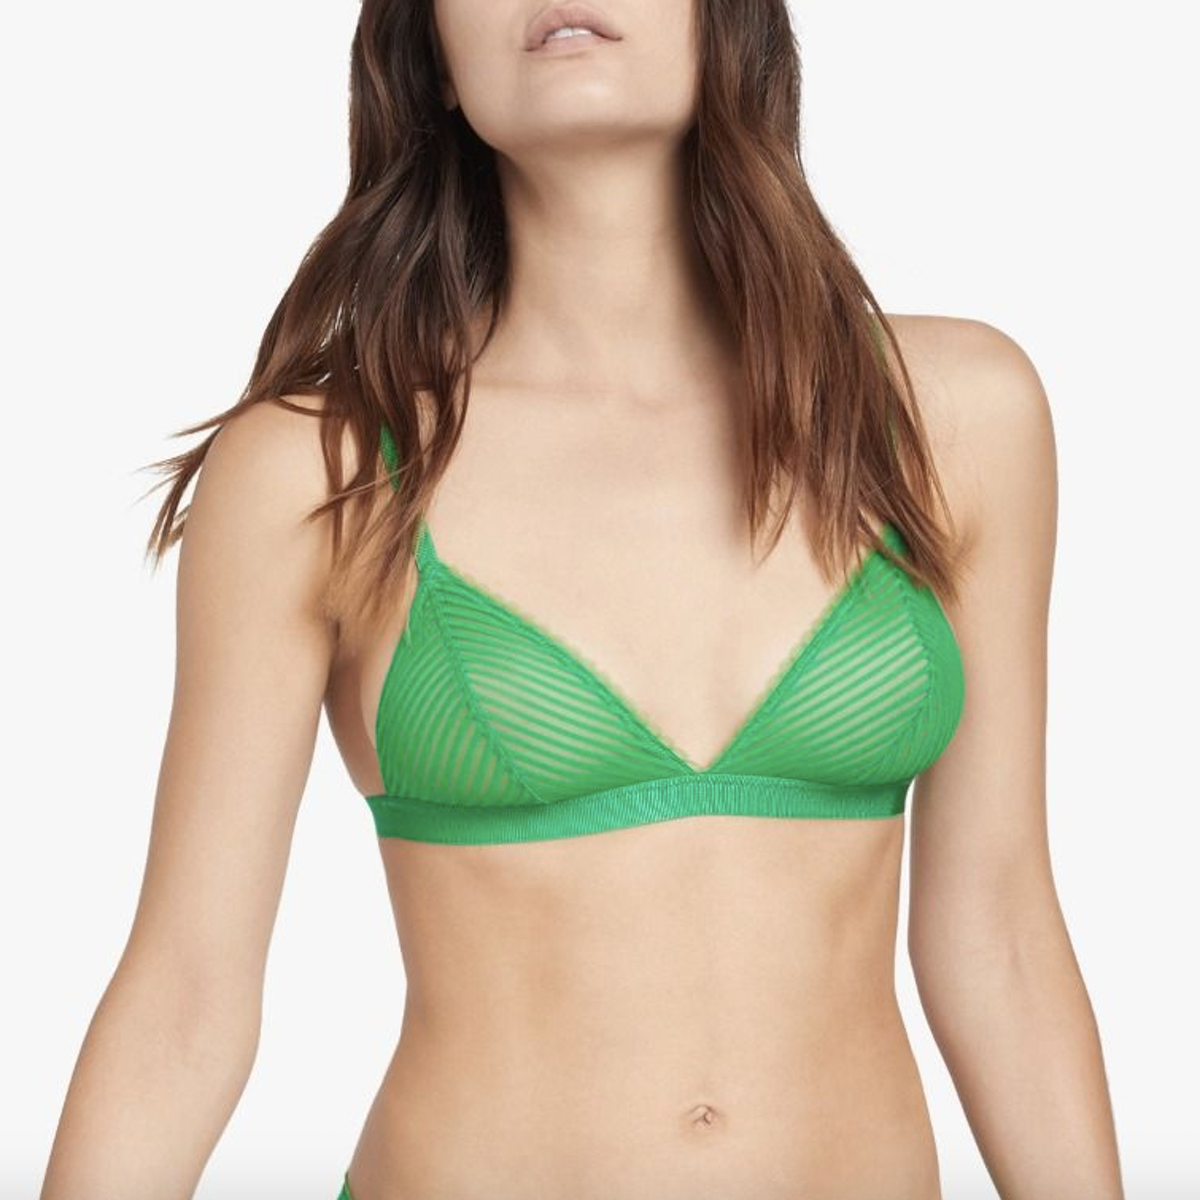 12 Beautiful Lingerie Brands To Get To Know